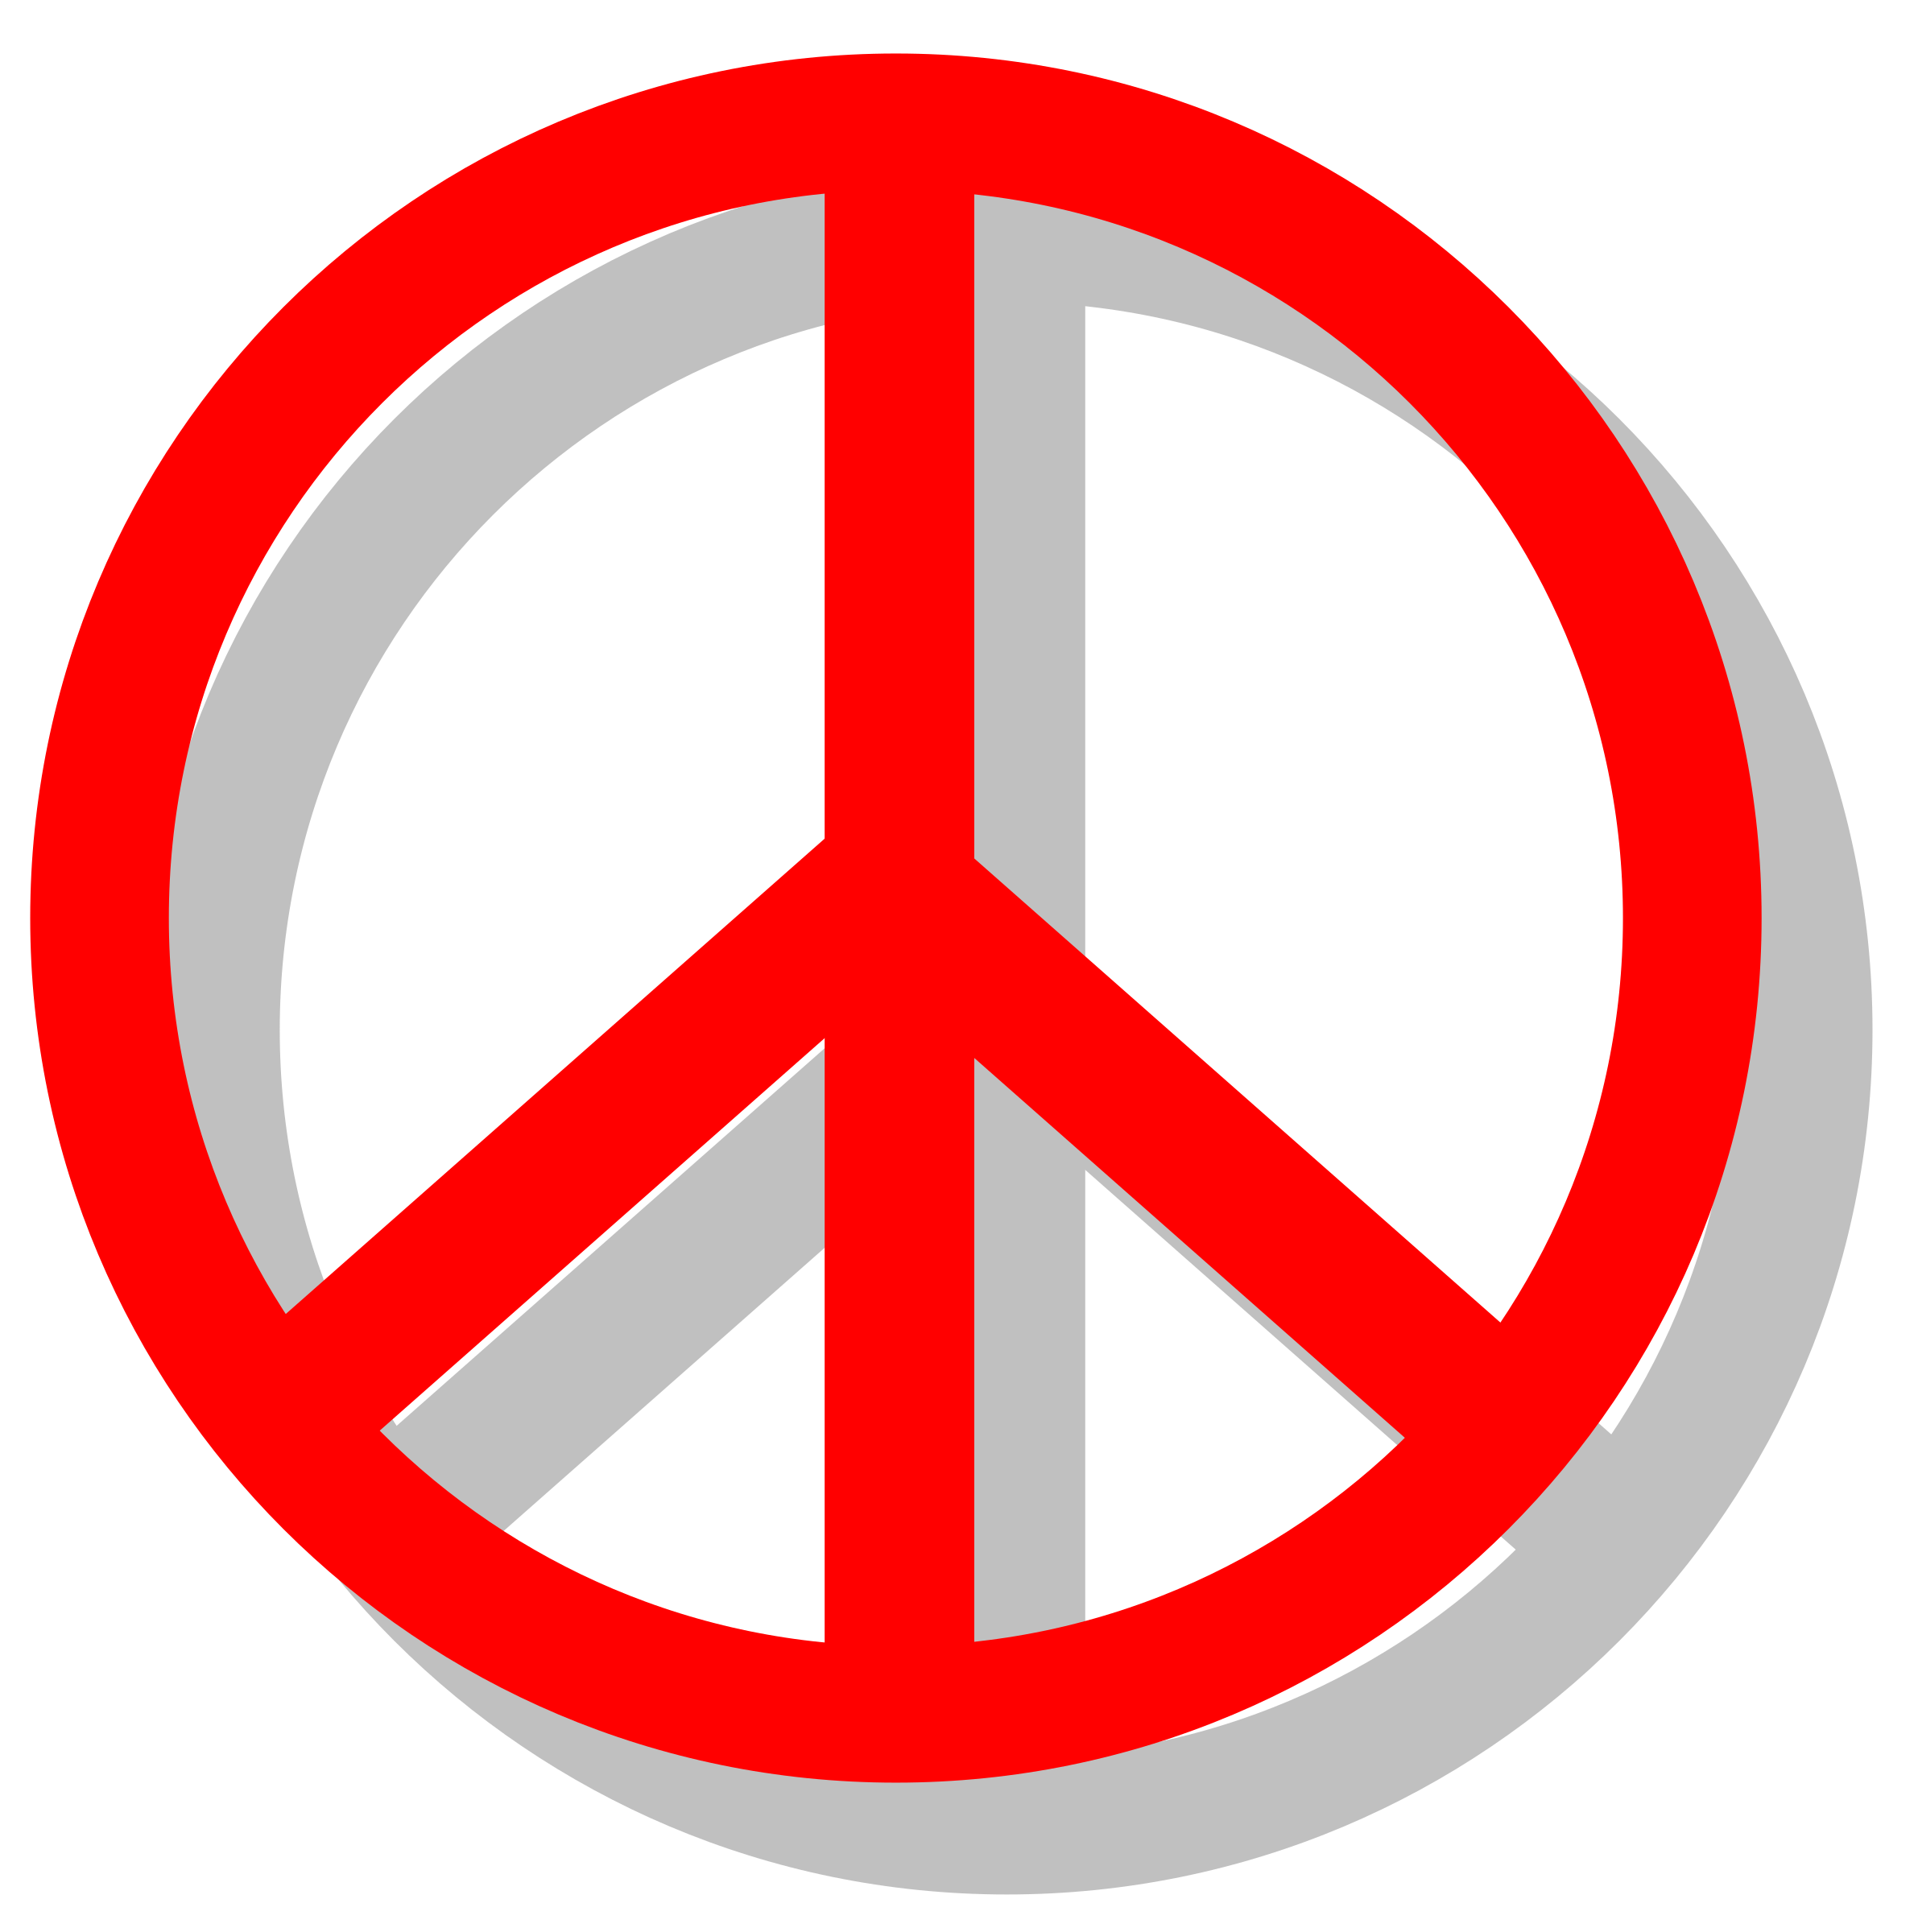 Sign big image png. Justice clipart peace